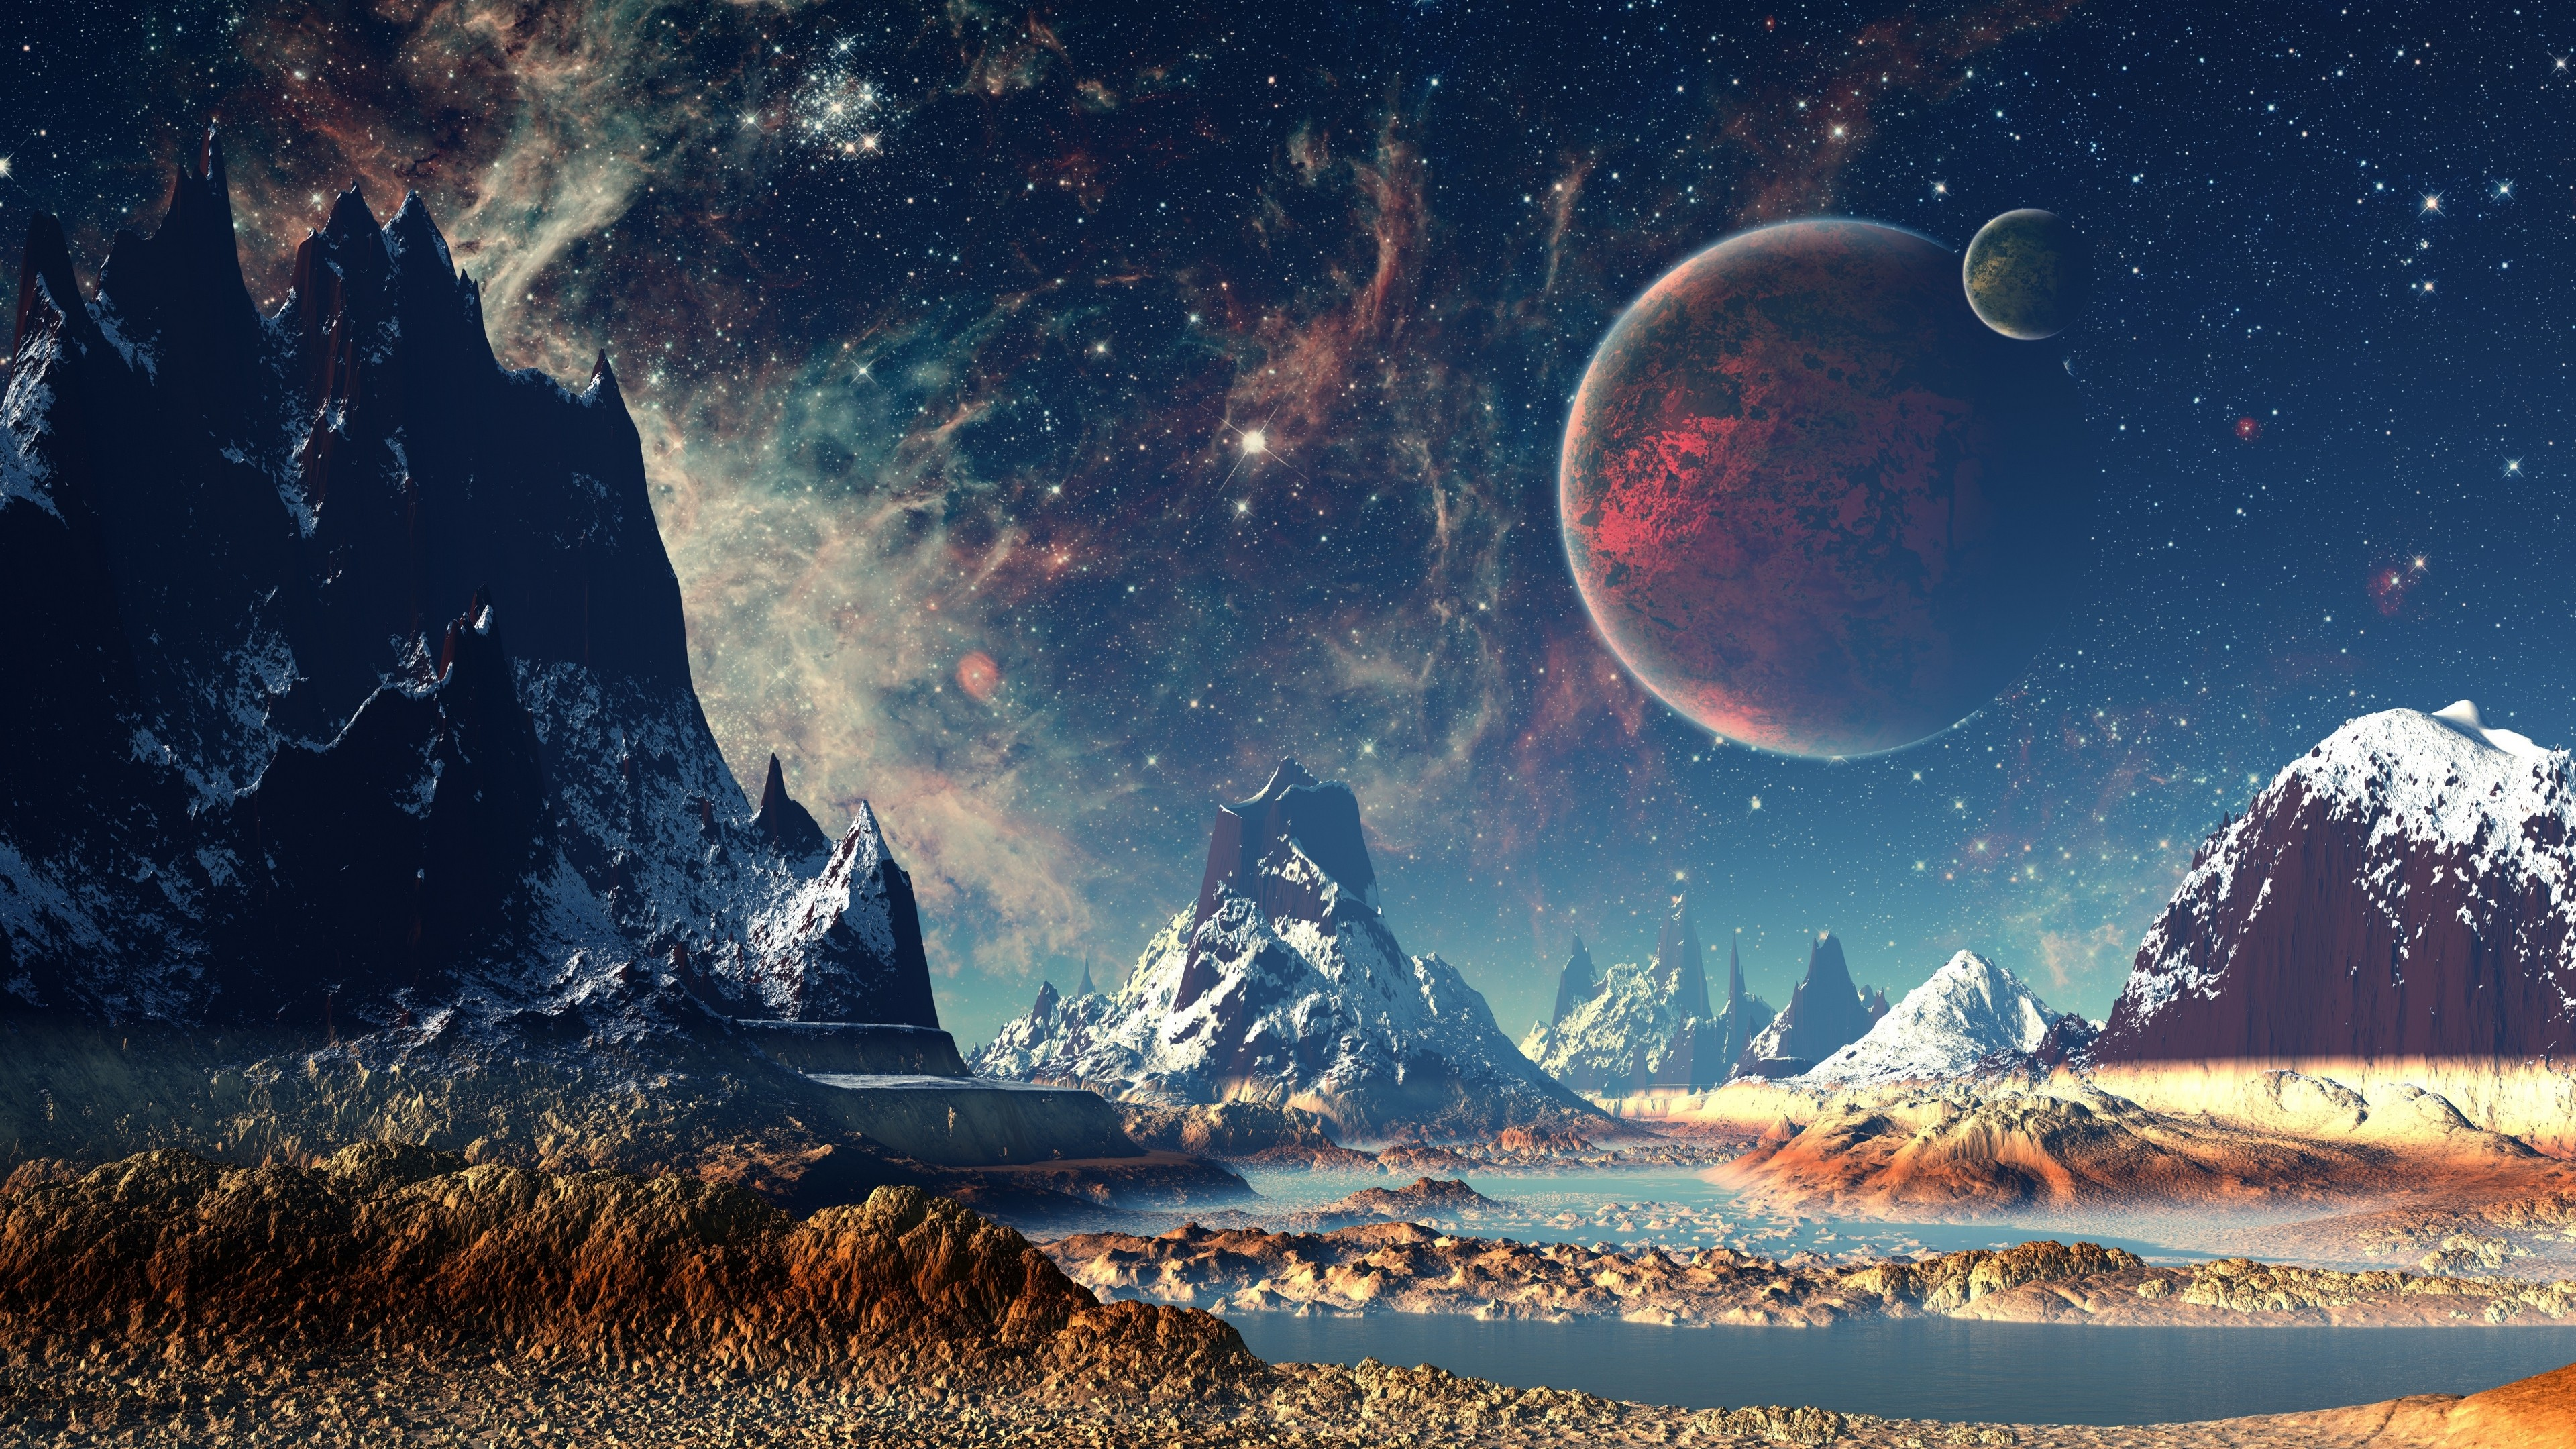 4k creative universe planet wallpaper wallpaper download - Red space wallpaper 4k ...